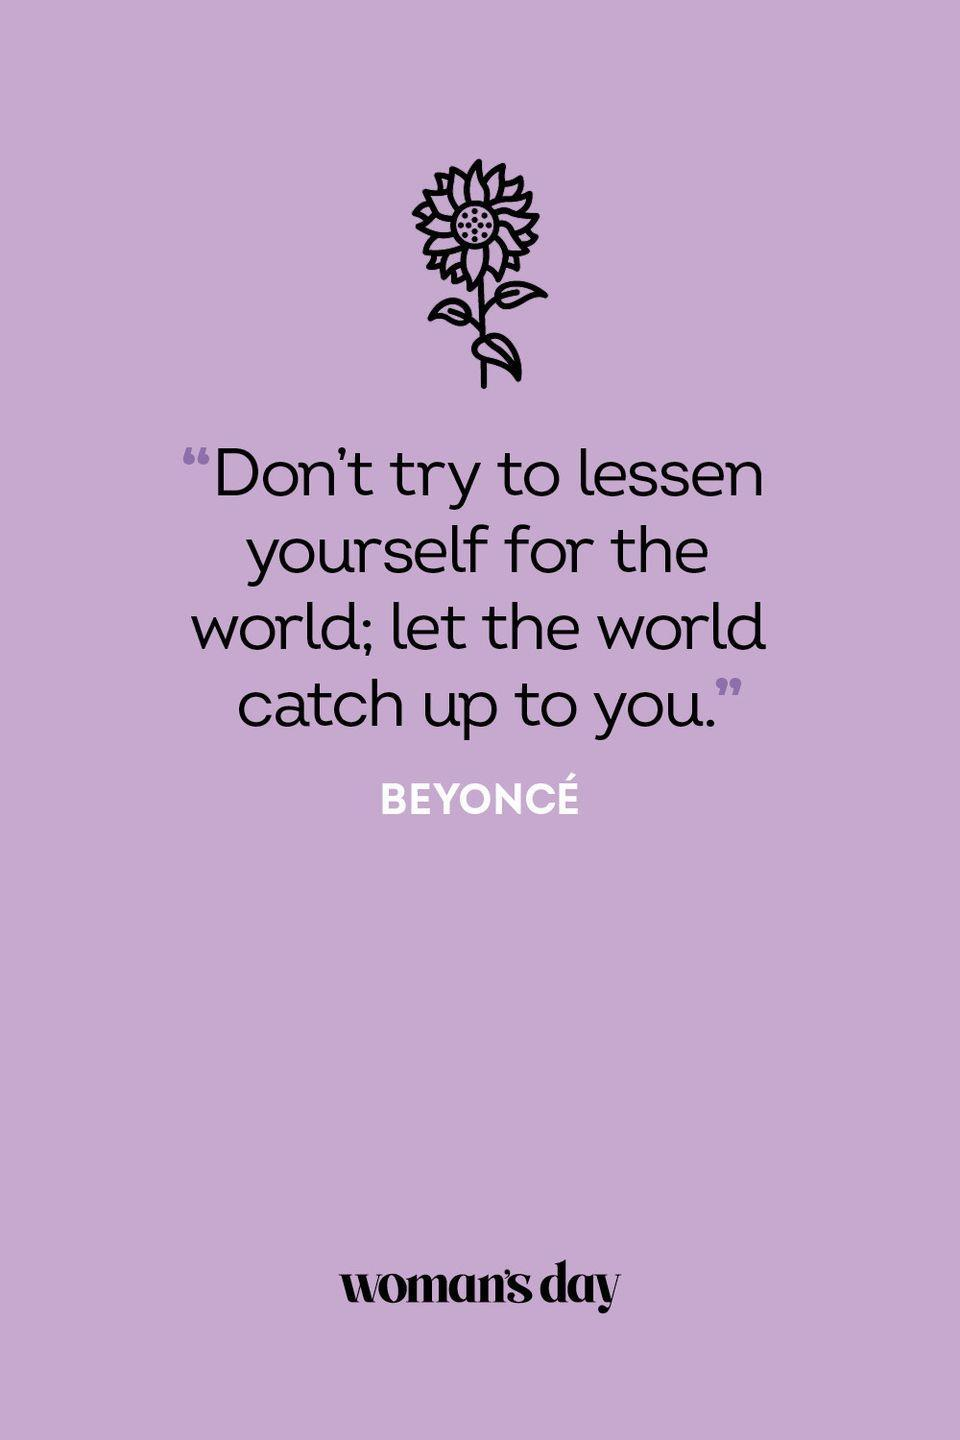 <p>Don't try to lessen yourself for the world; let the world catch up to you.</p>